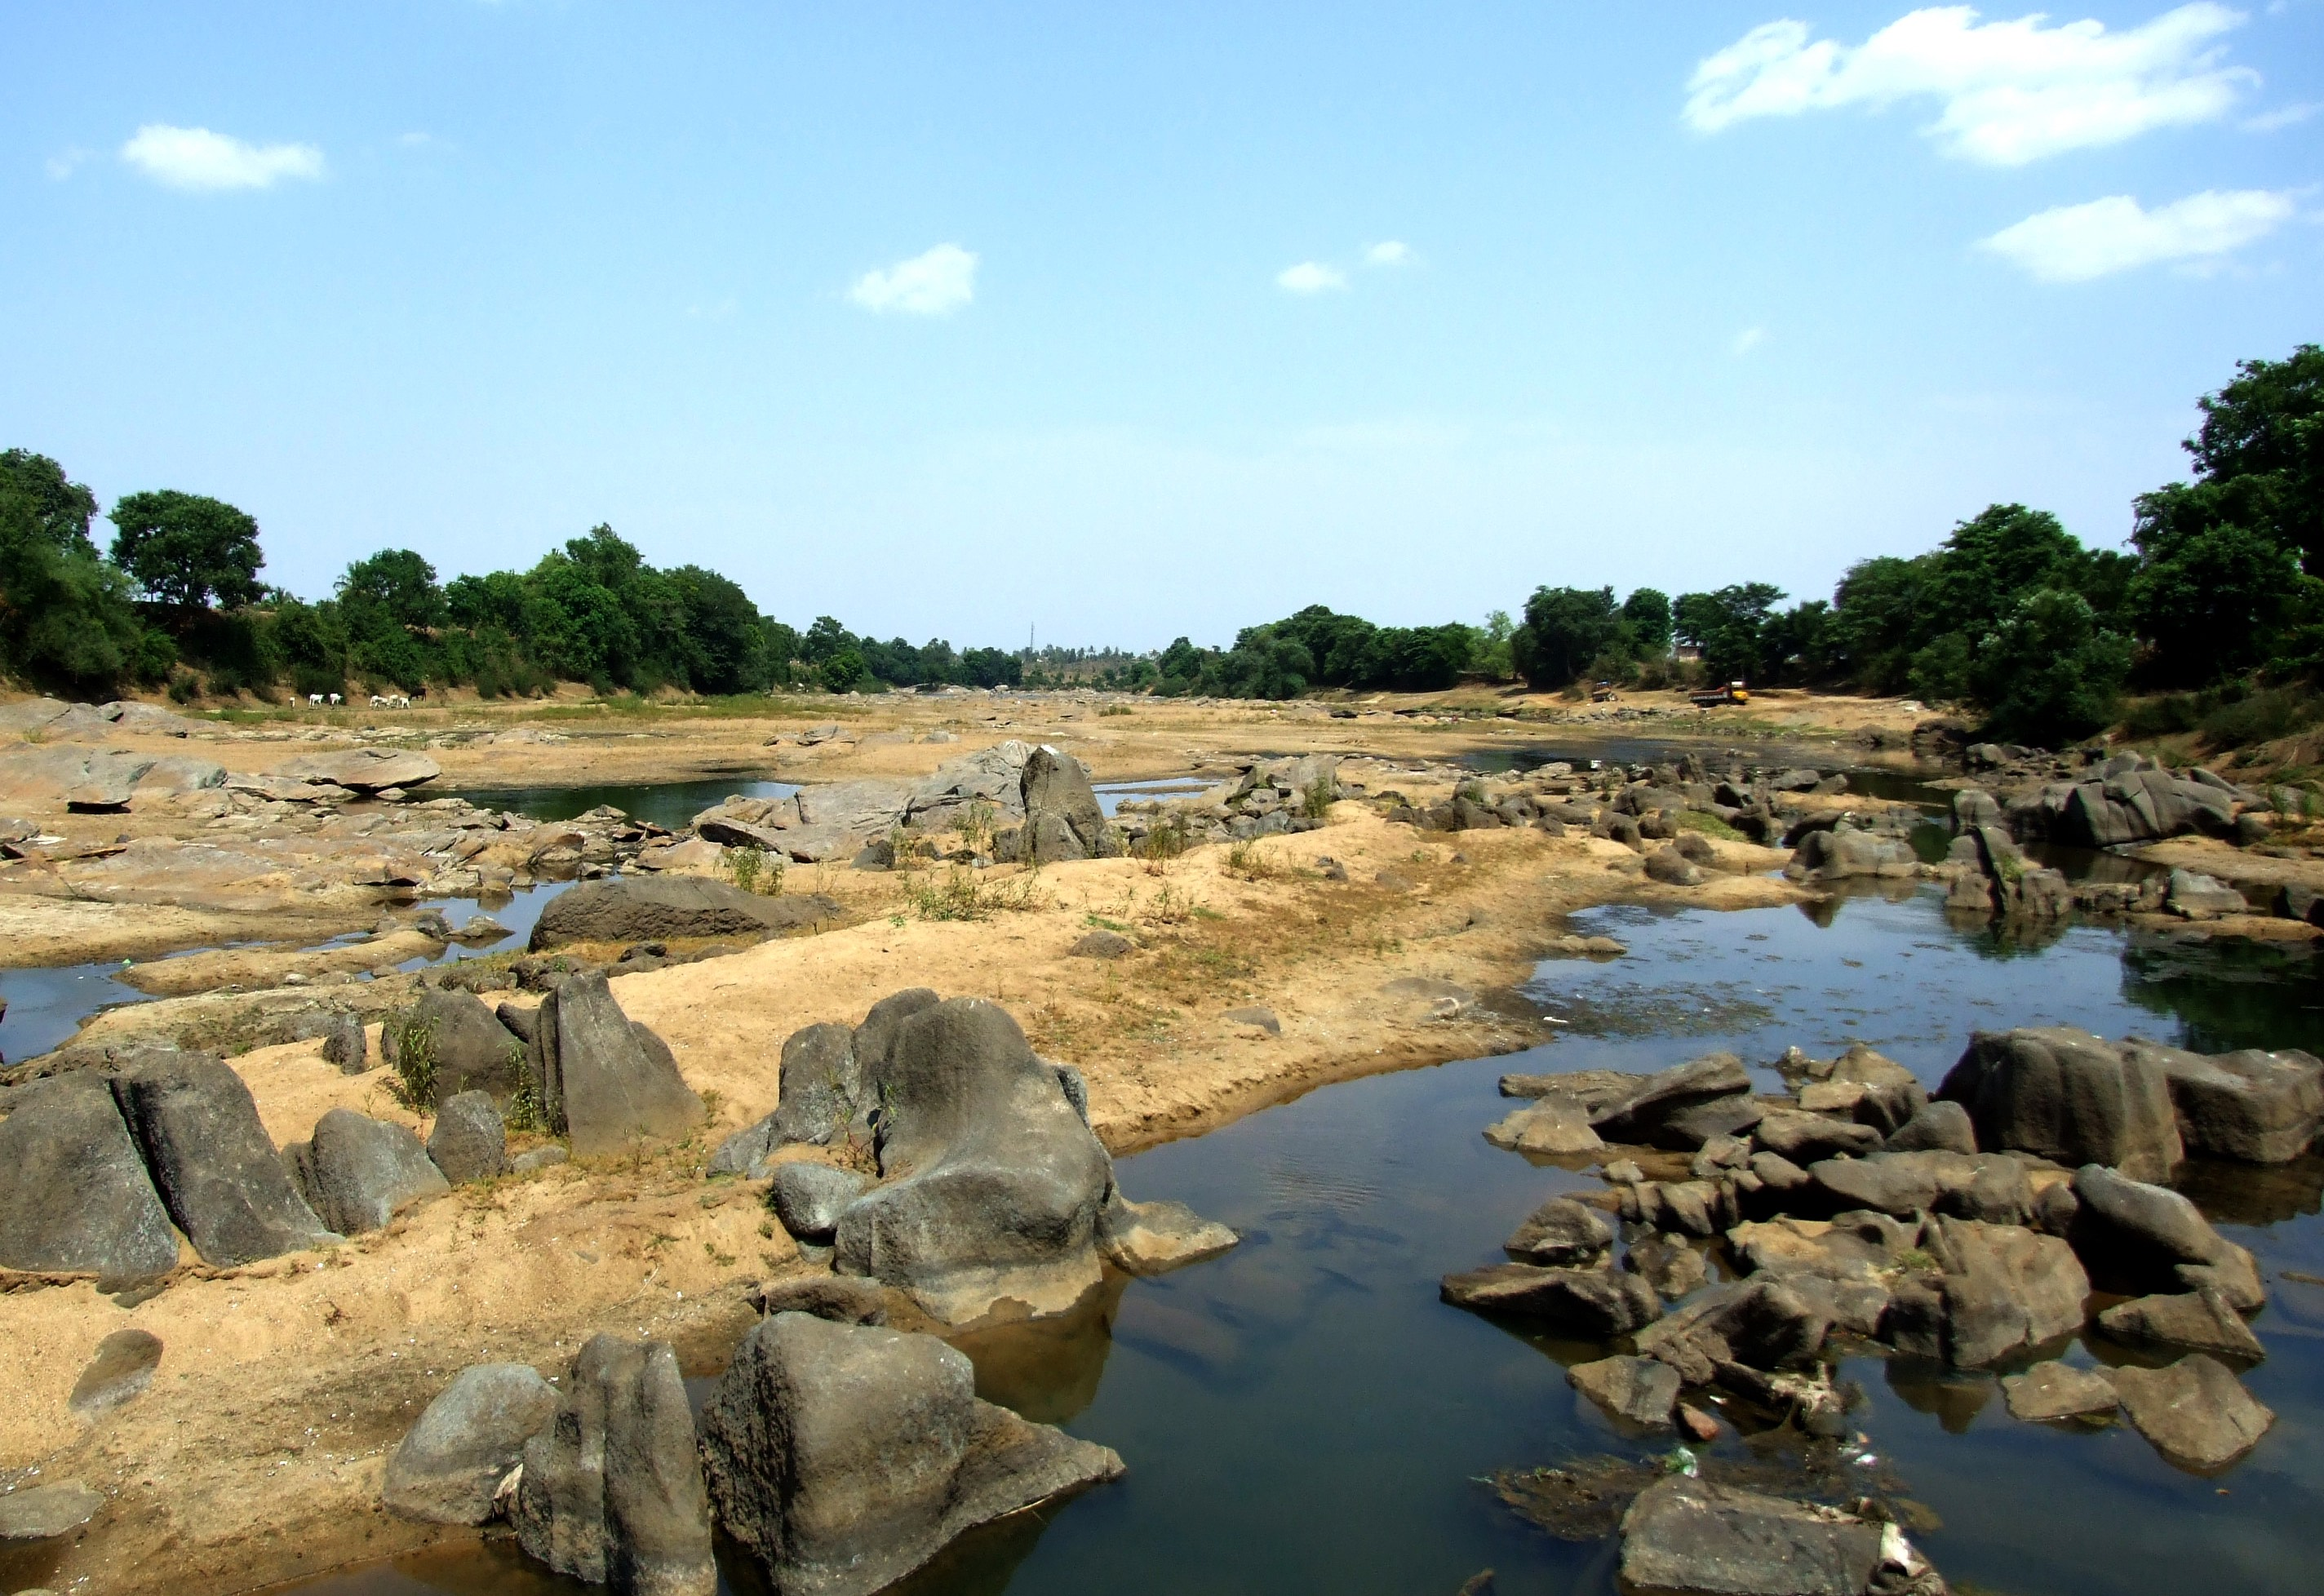 Rampant and illegal sand mining had exposed the spine of the river. Credit: Nisarg Prakash